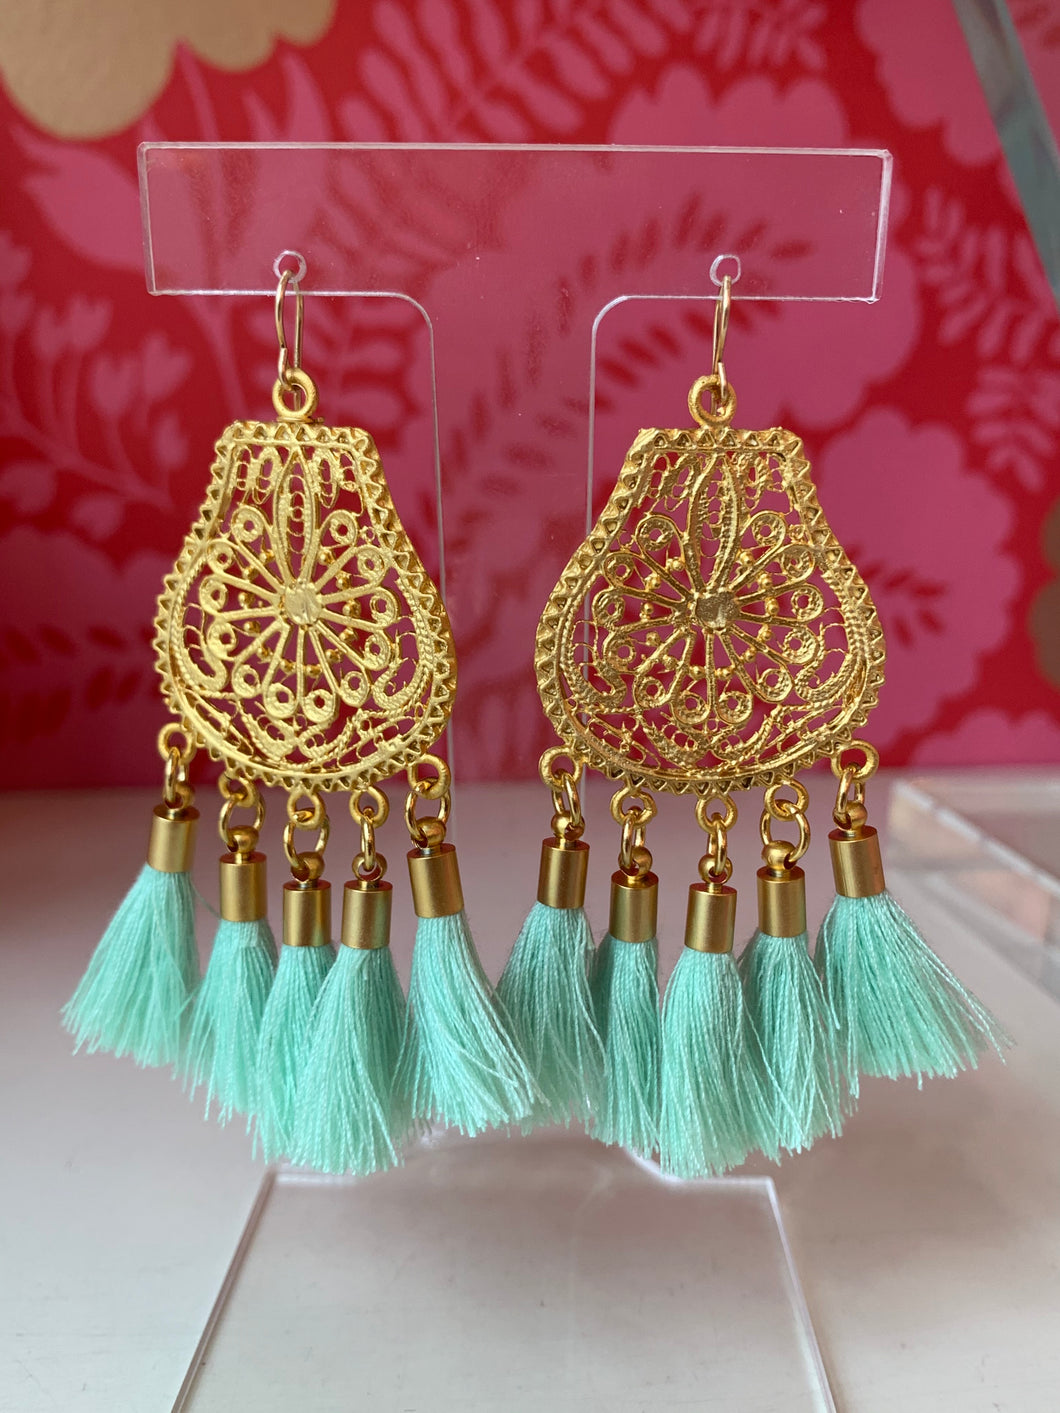 Mint Fringe Tassel Earrings